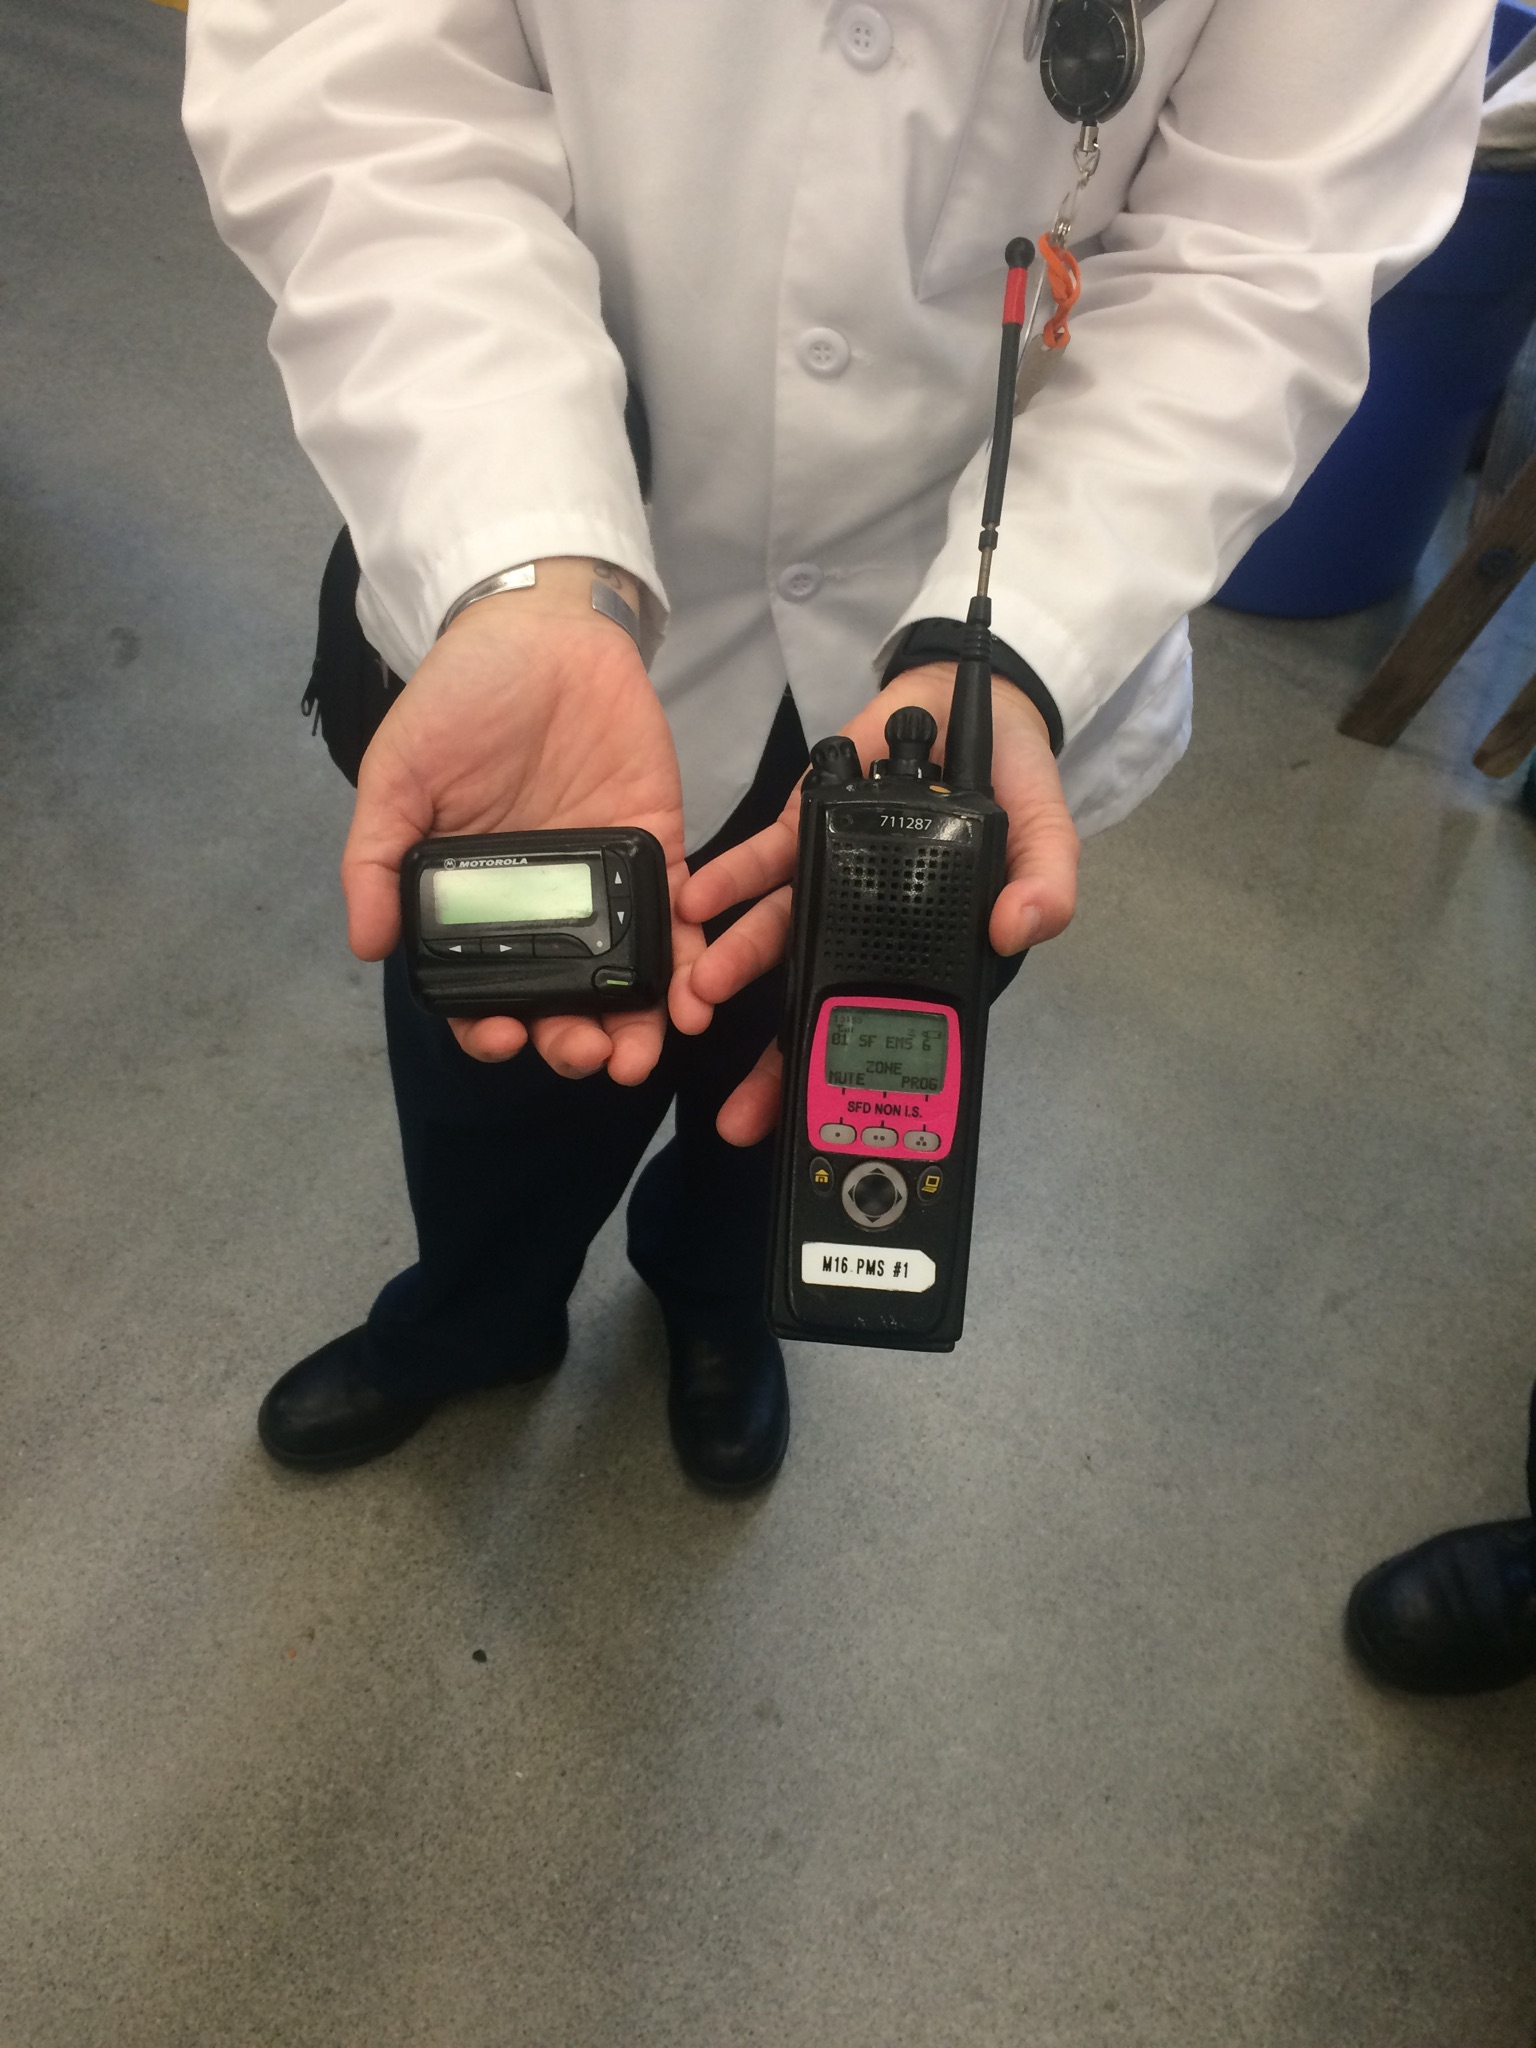 A paramedic showing us her radio and pager. - We listened in on a call over the radio channel and it was a muffled paramedic's voice describing the injury to a doctor so he could prep before the patient came in.